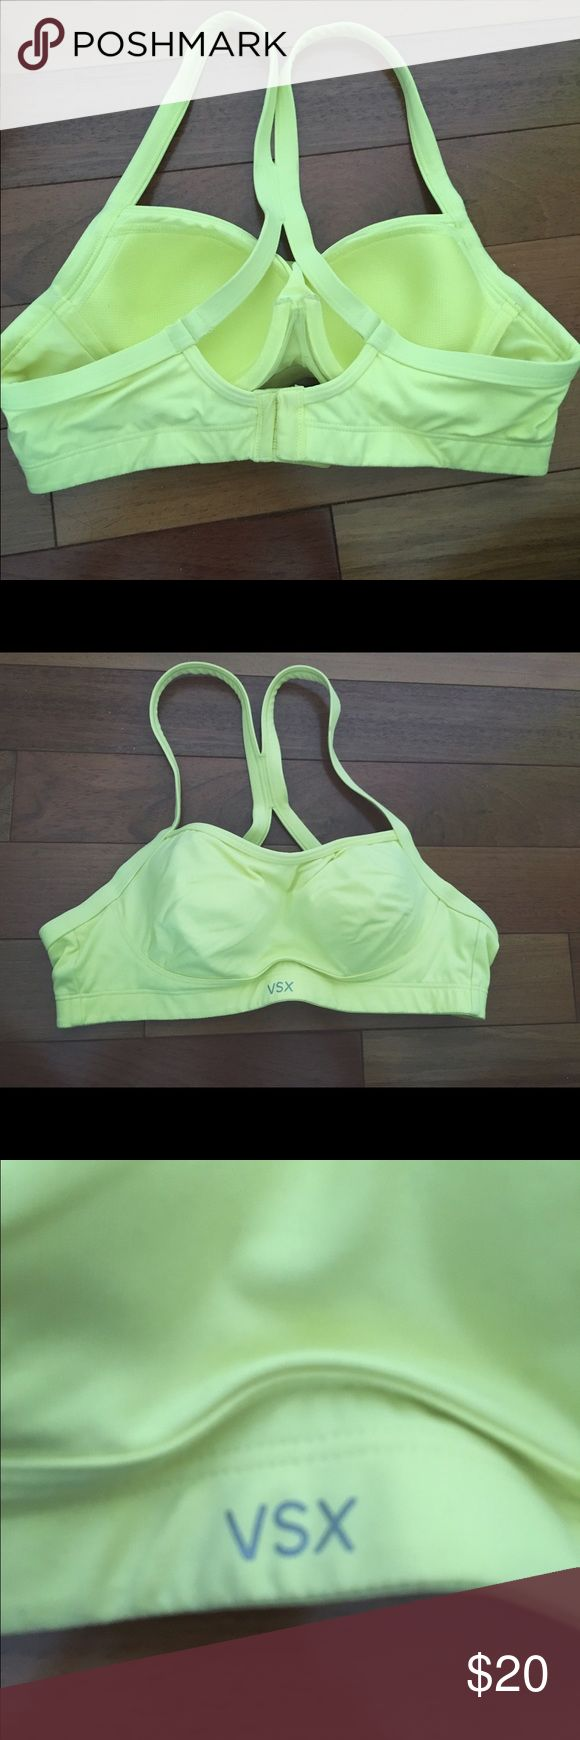 VSX neon yellow sports bra Only worn twice, the condition is perfect! Have no more use to it. Thanks for looking!! Intimates & Sleepwear Bras